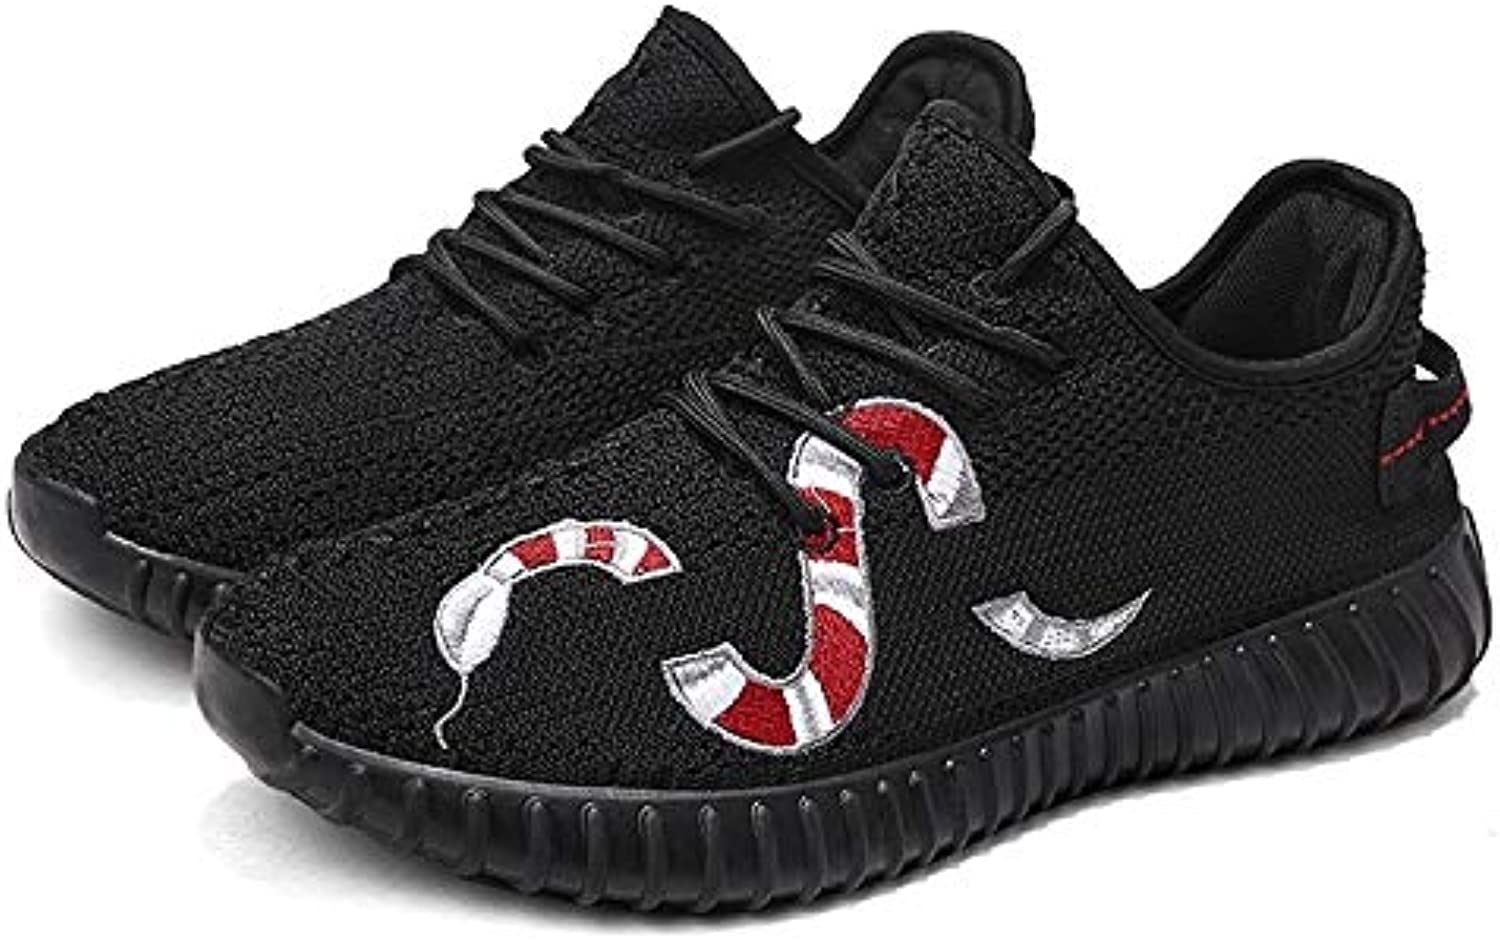 Anstorematealliance Outdoor&Sports shoes Embroidery Snake Pattern Breathable Flat Heel Sports Casual shoes for Men (color Black Size 39)